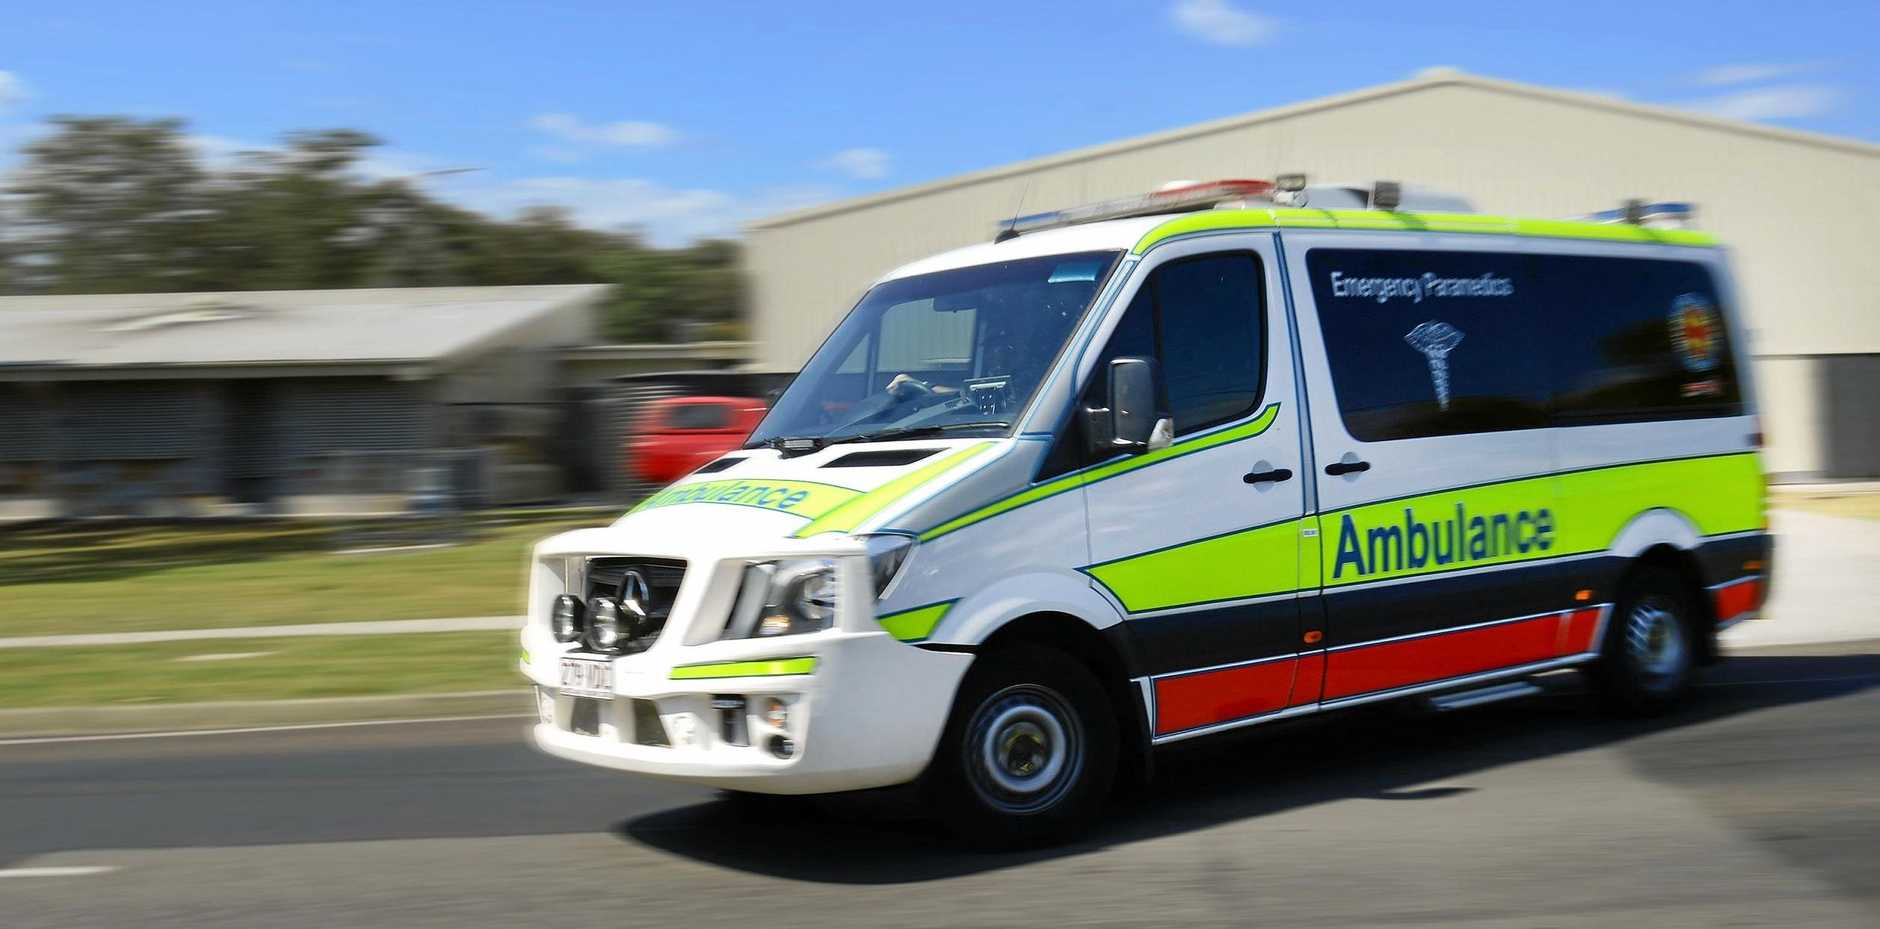 Paramedics were called to the collision on Arthur St in Howard at 6.47pm.